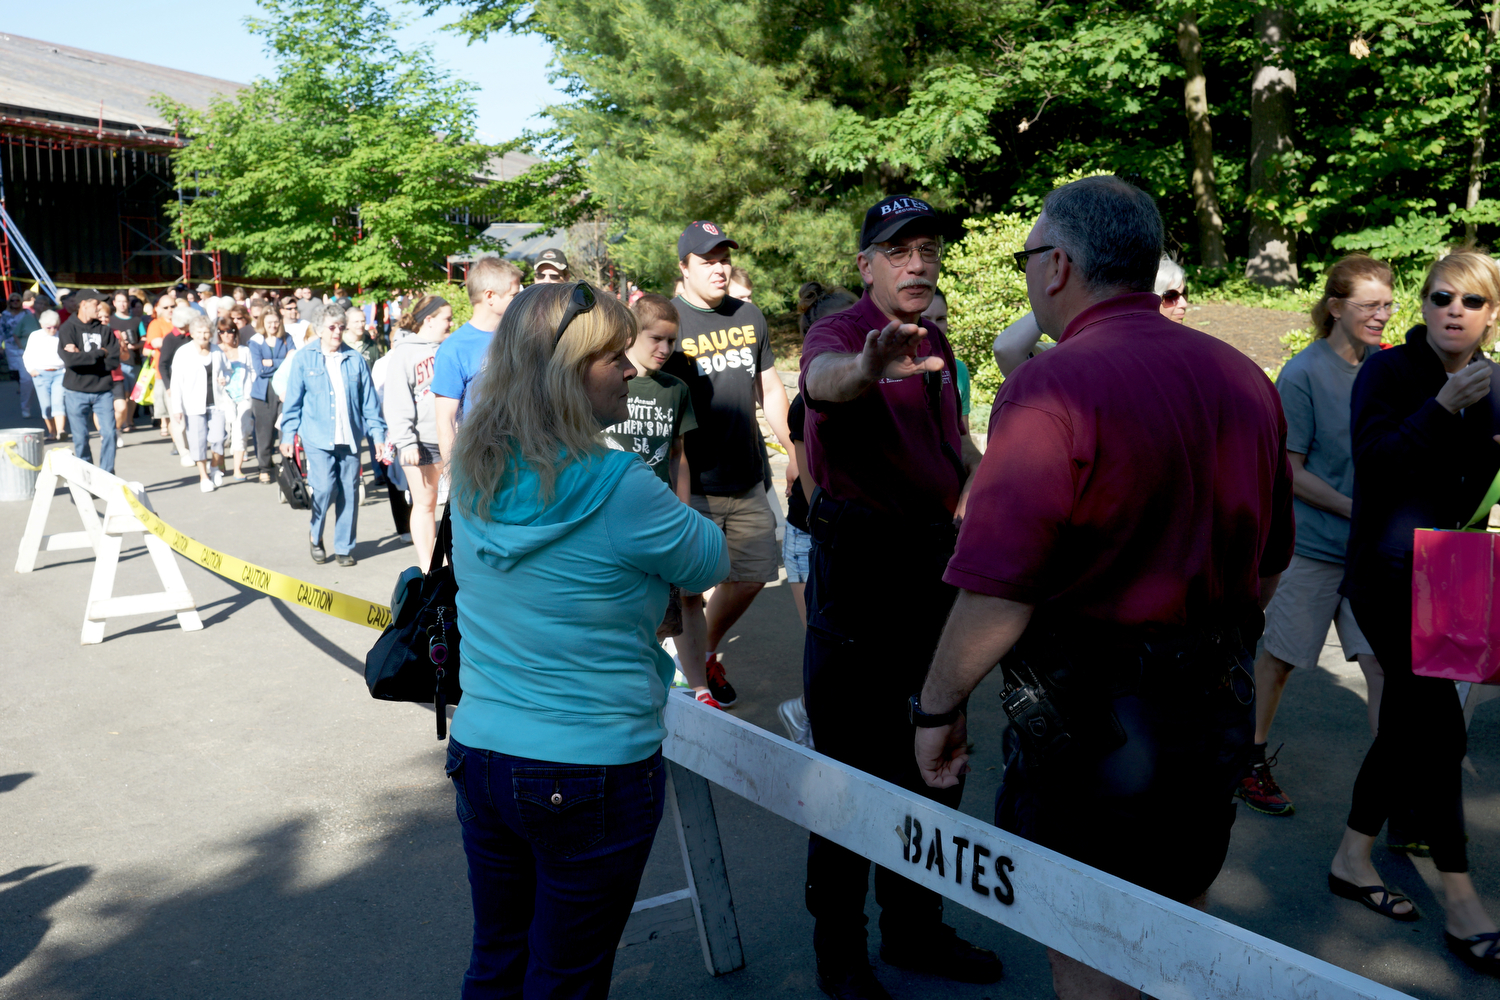 Bates' Clean Sweep sale always draws a crowd. Photograph by Vasu Leeaphon '15/Bates College.